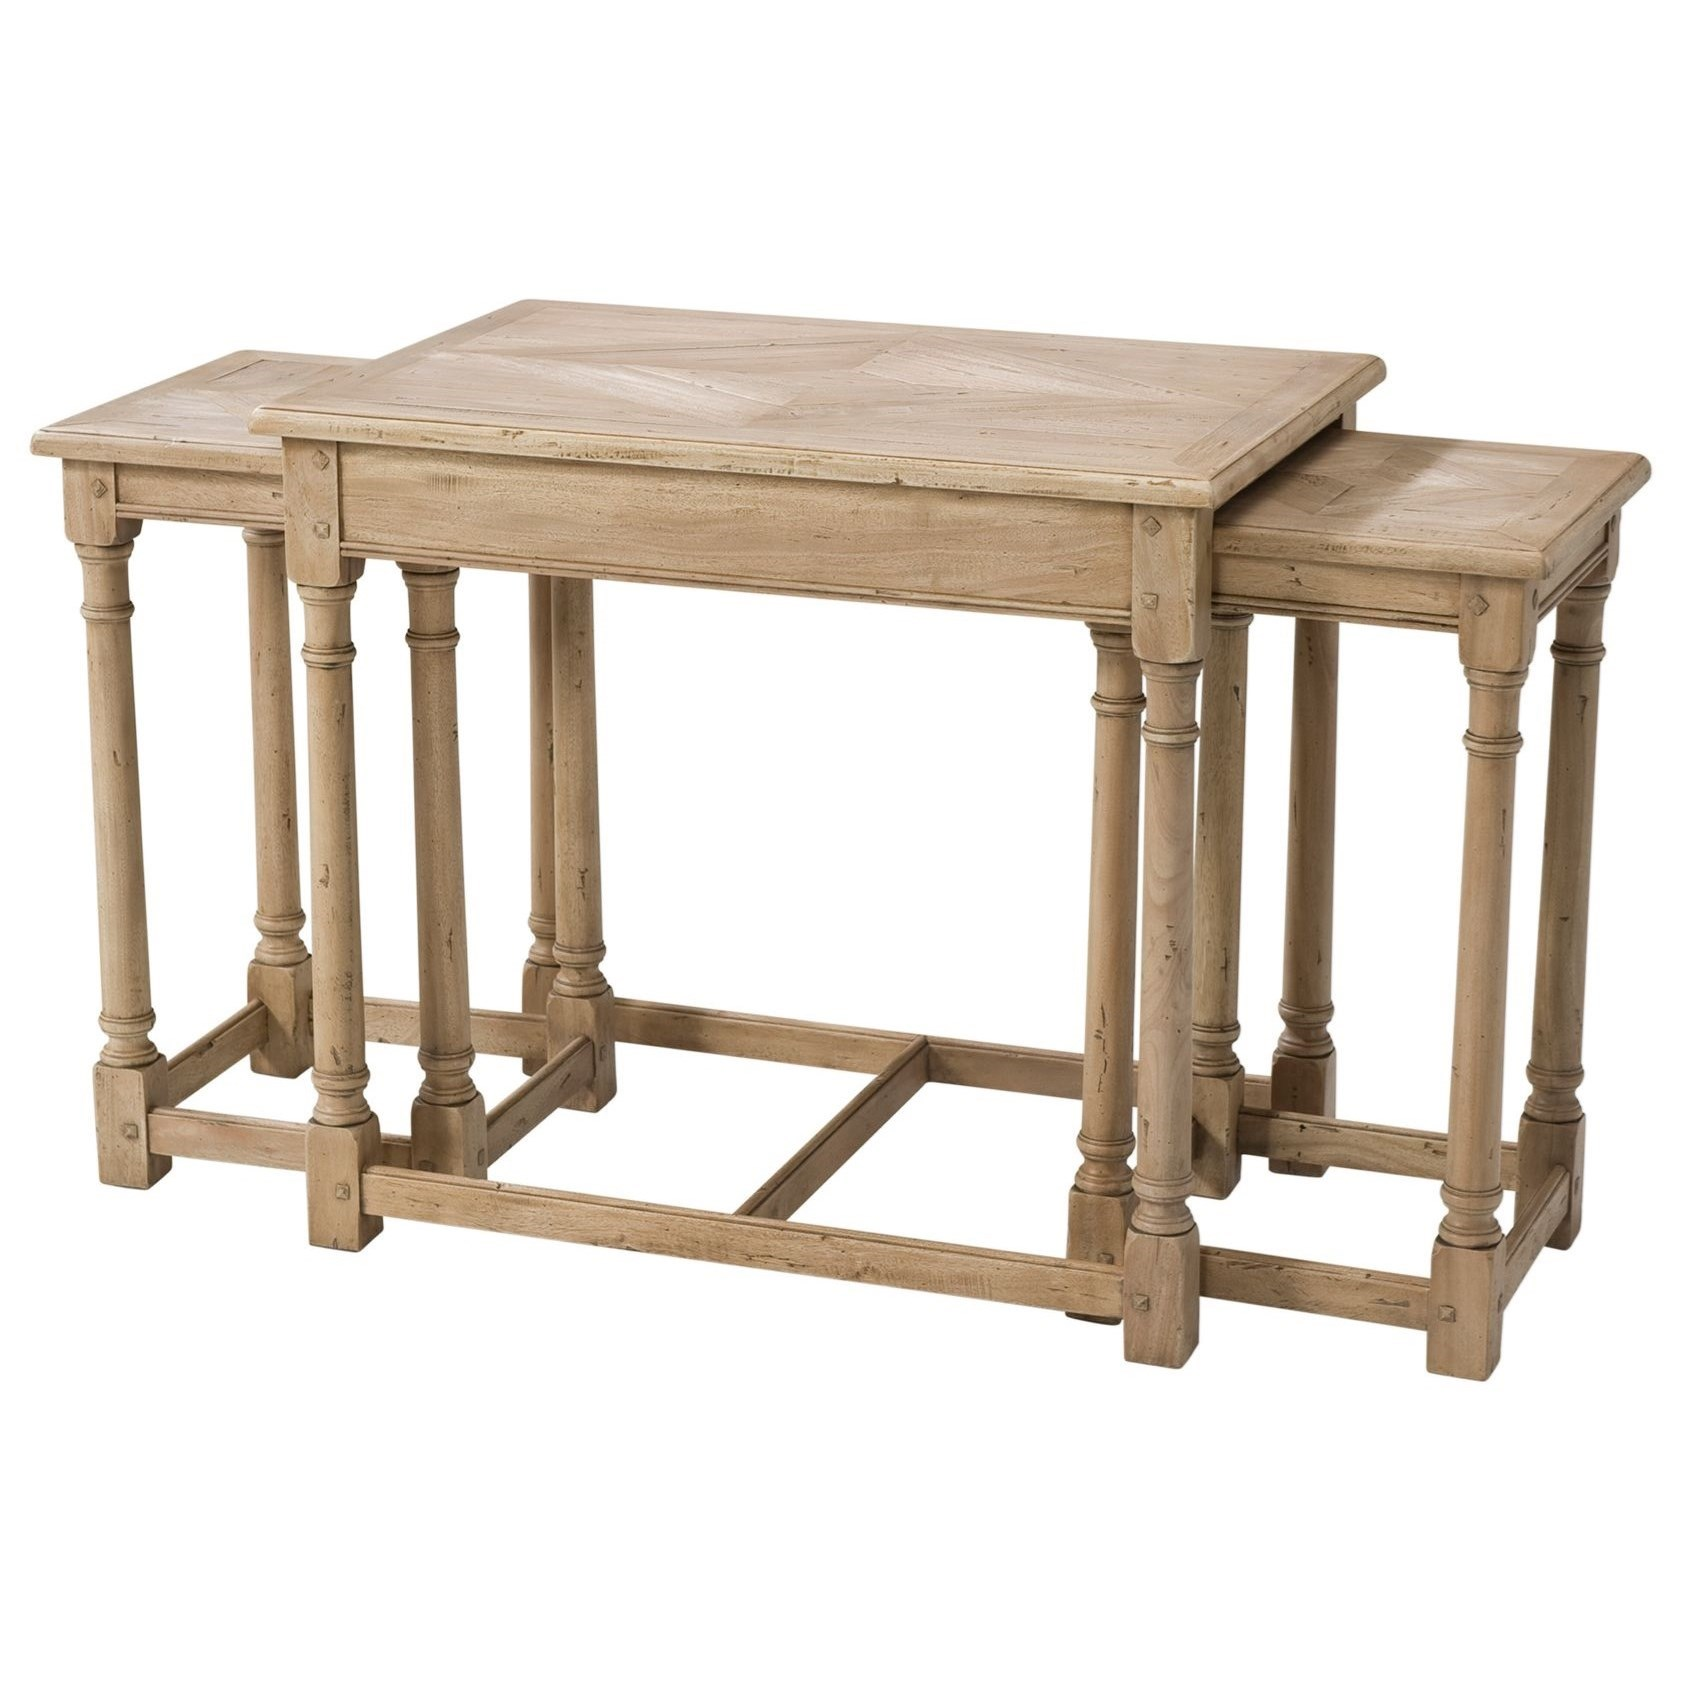 Castle Bromwich Orchard Nest of Tables by Theodore Alexander at Baer's Furniture